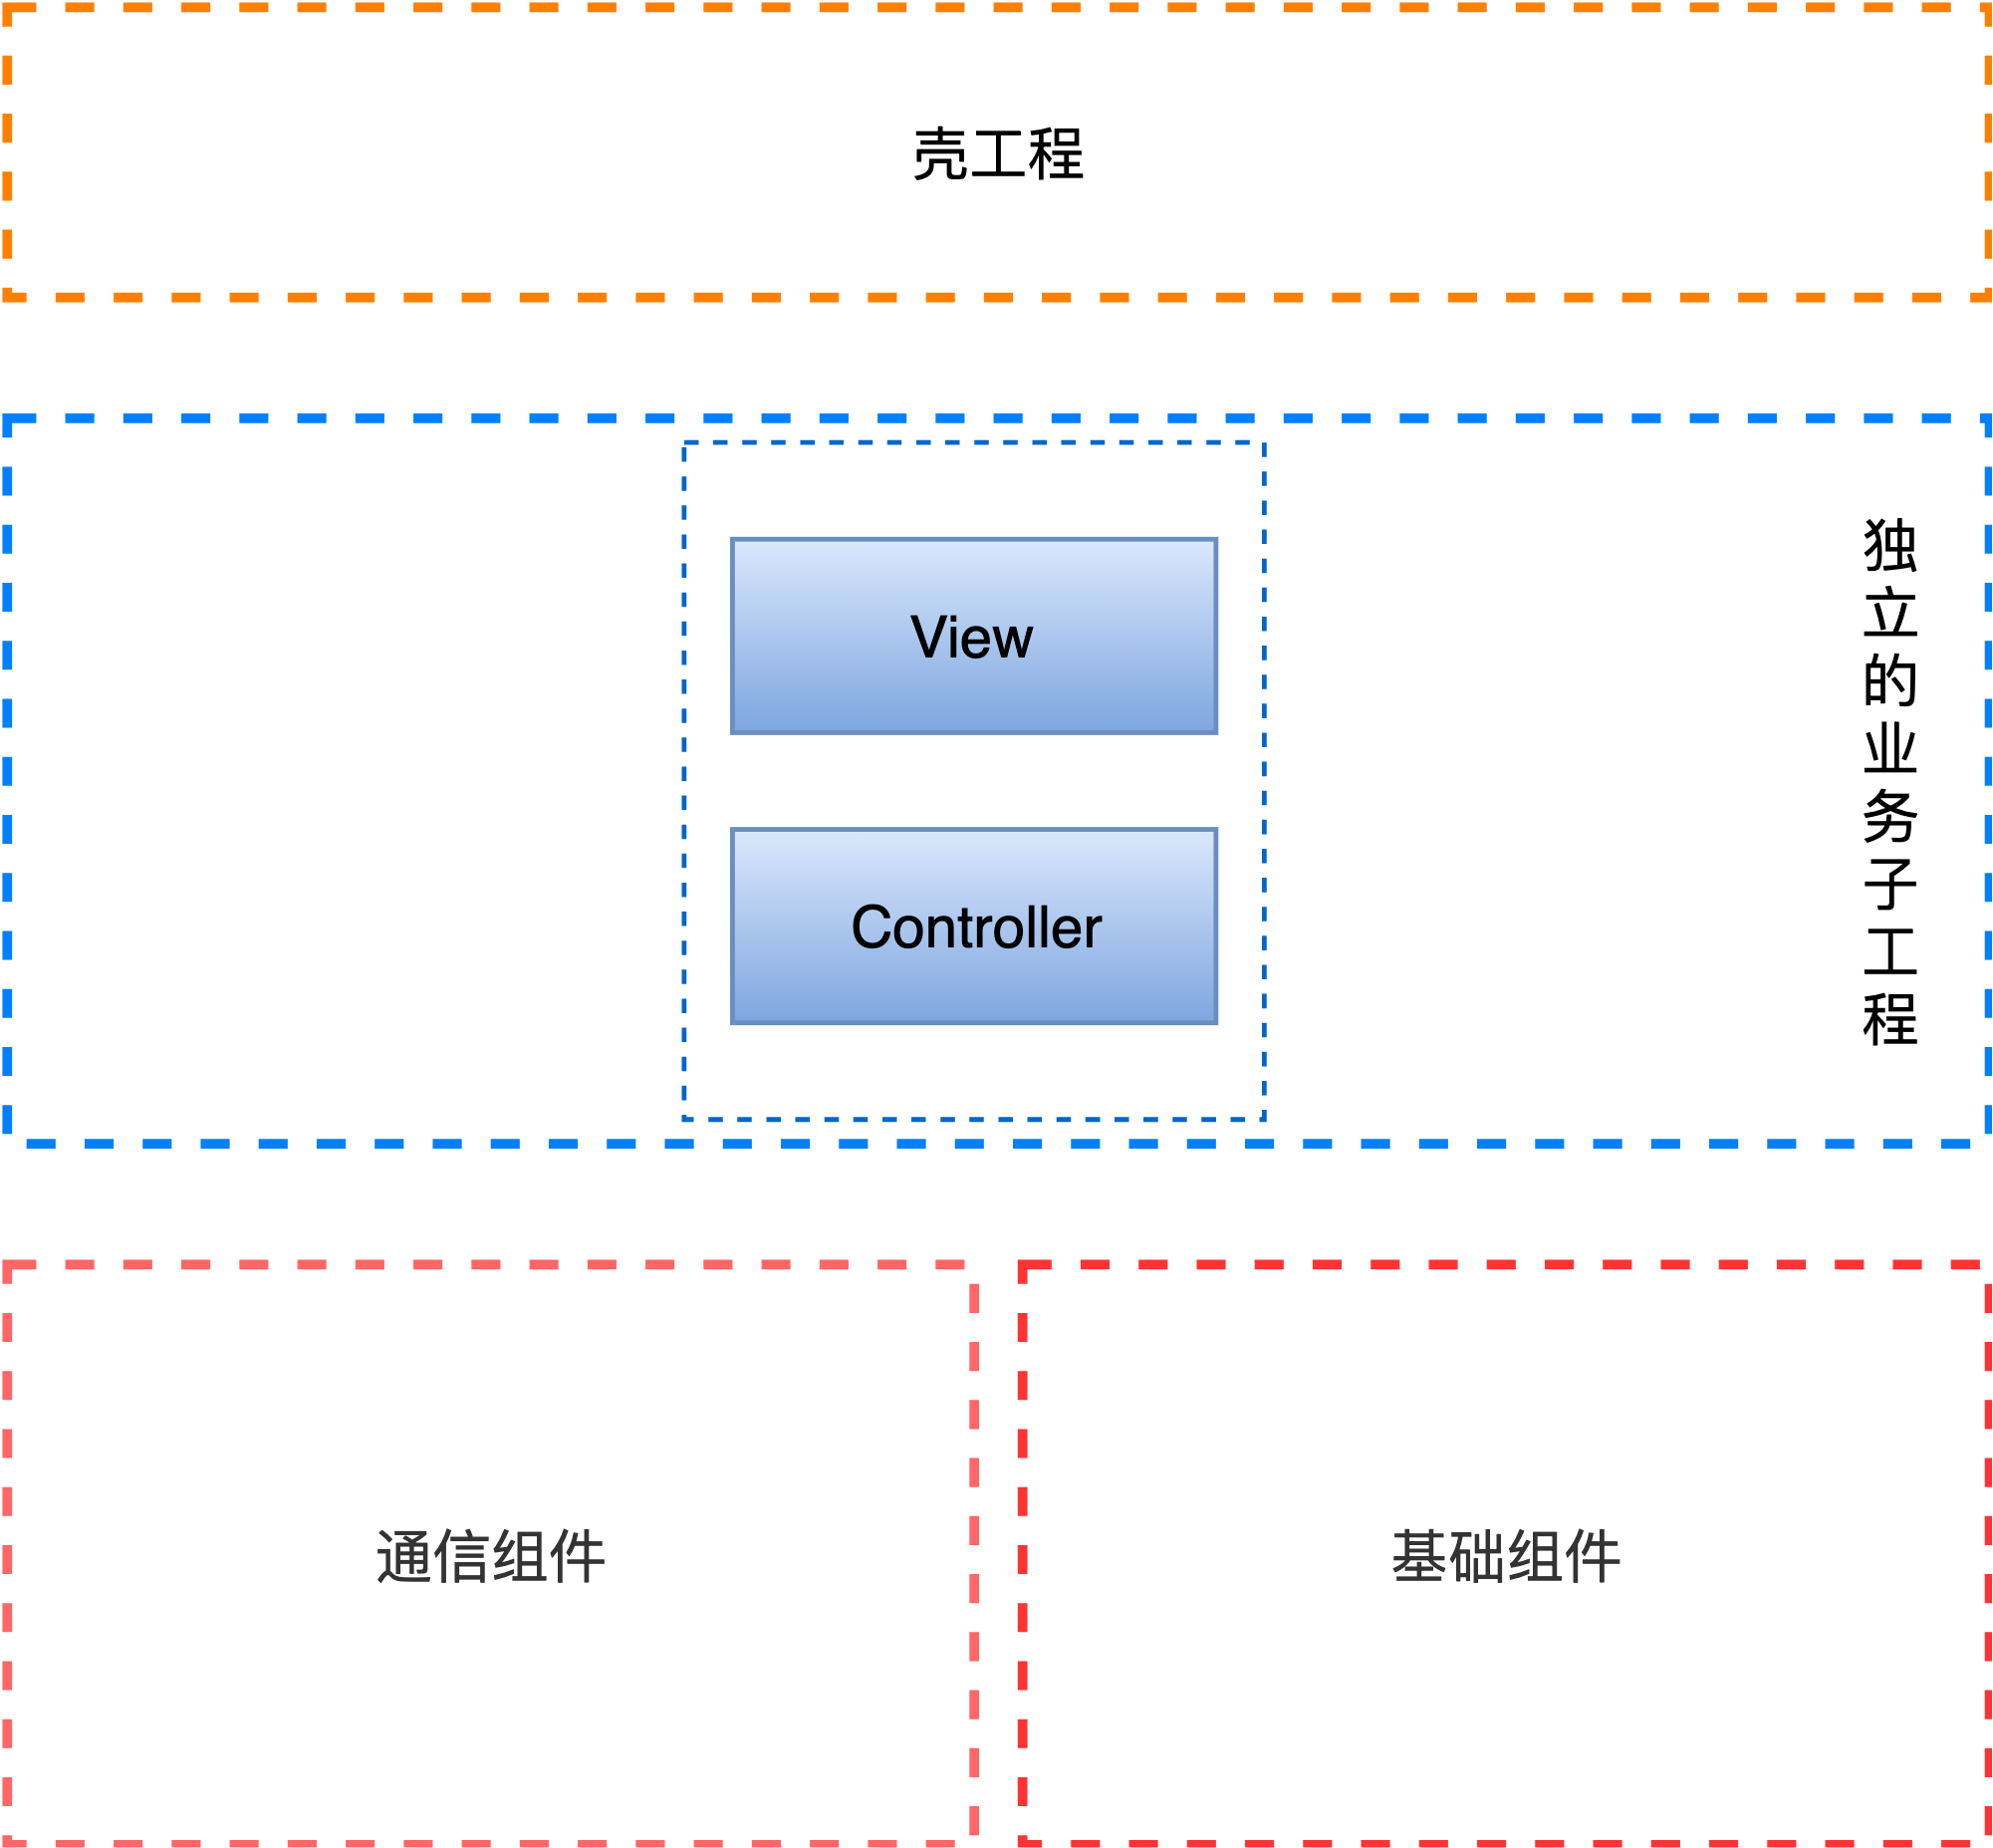 Untitled Diagram (49).png